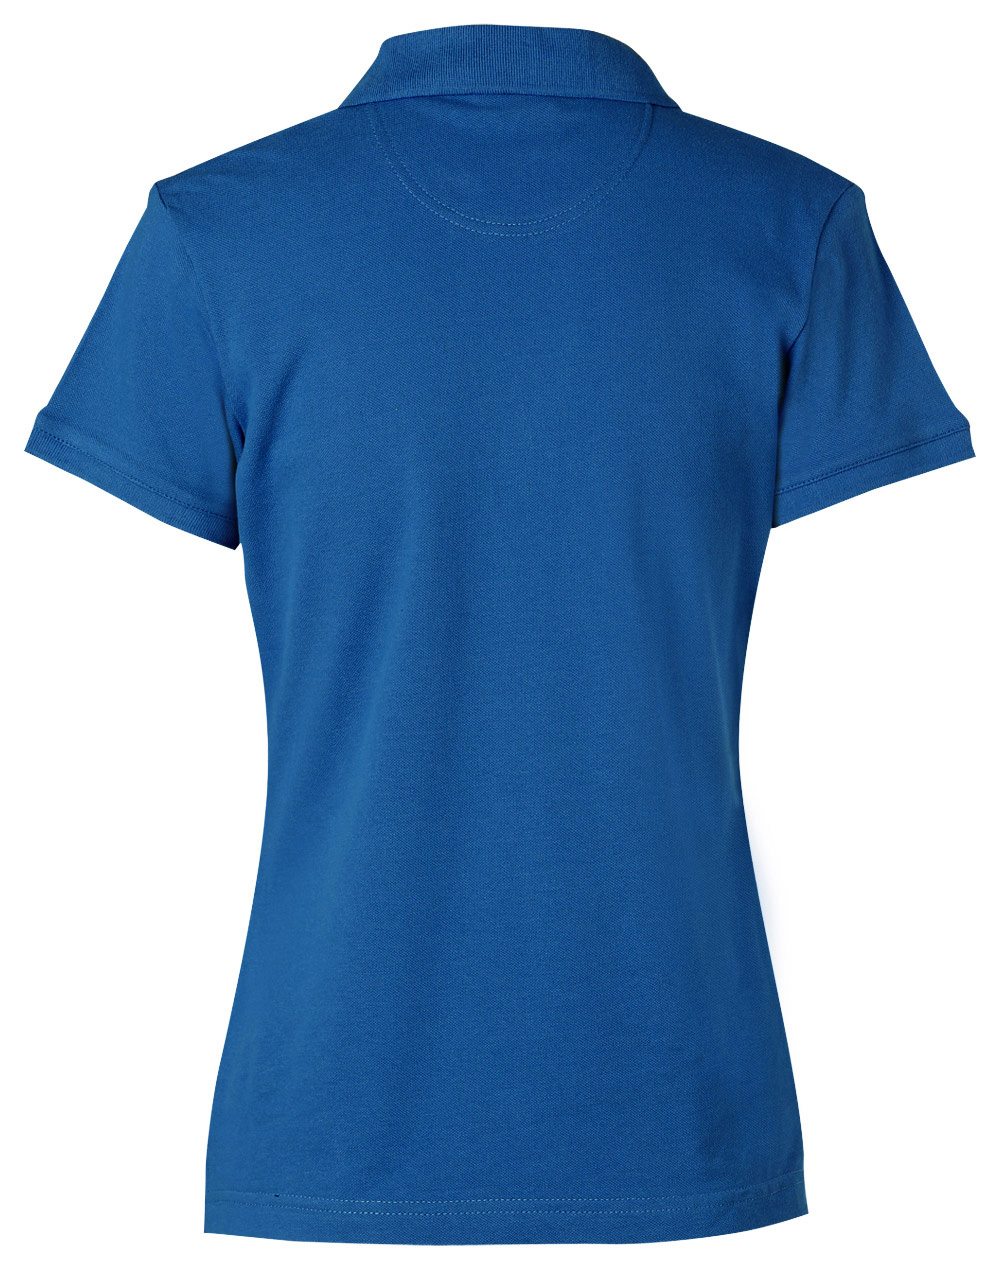 https://s3-ap-southeast-1.amazonaws.com/ws-imgs/POLOSHIRTS/PS40_FrenchBlue_back.jpg